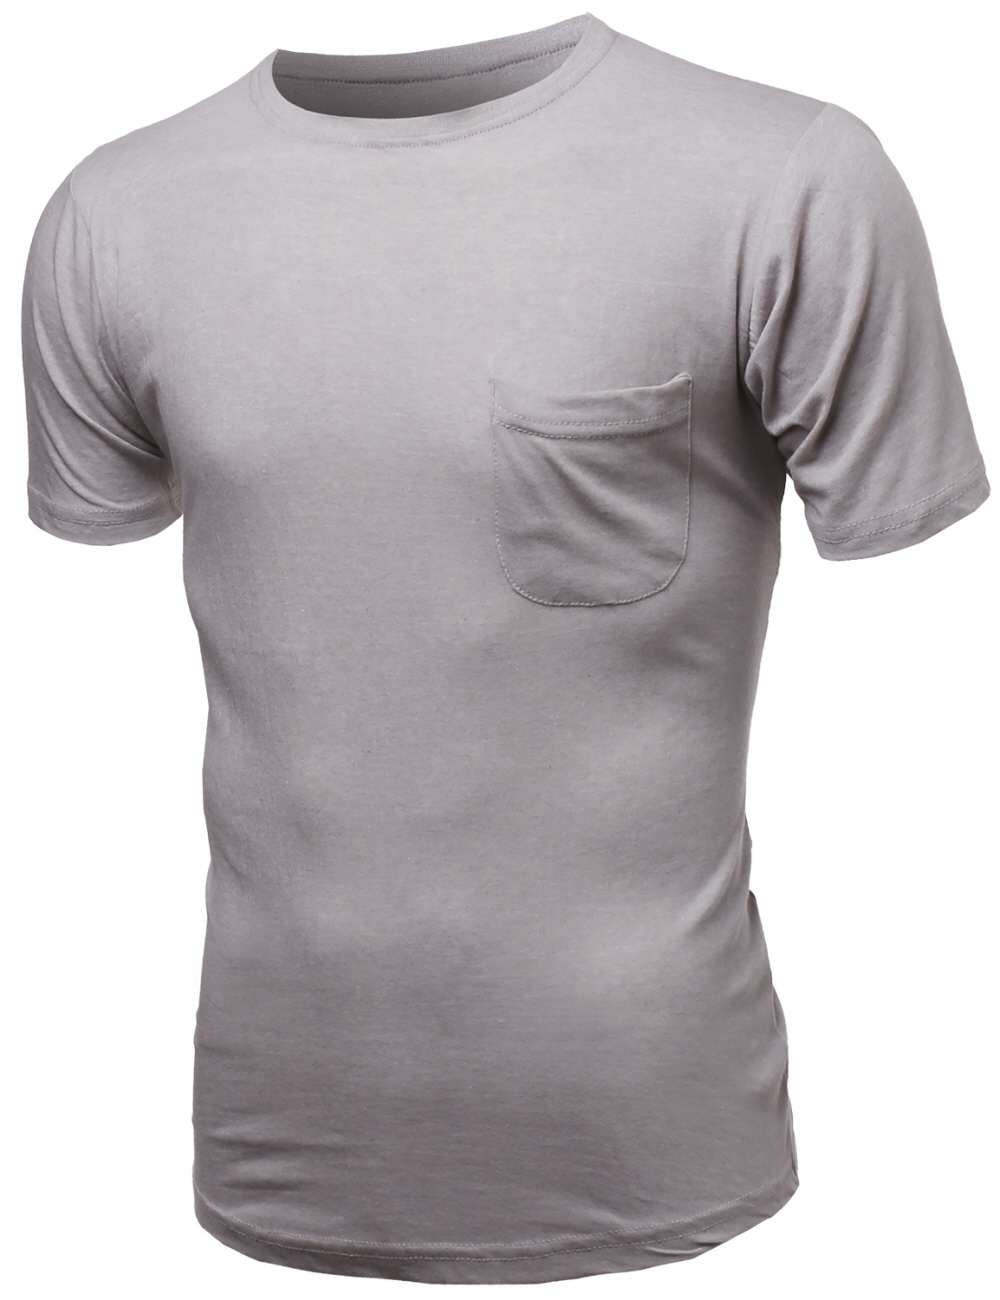 Domple Mens Curve Hem Casual Long Sleeve Round Neck T-Shirts Tops